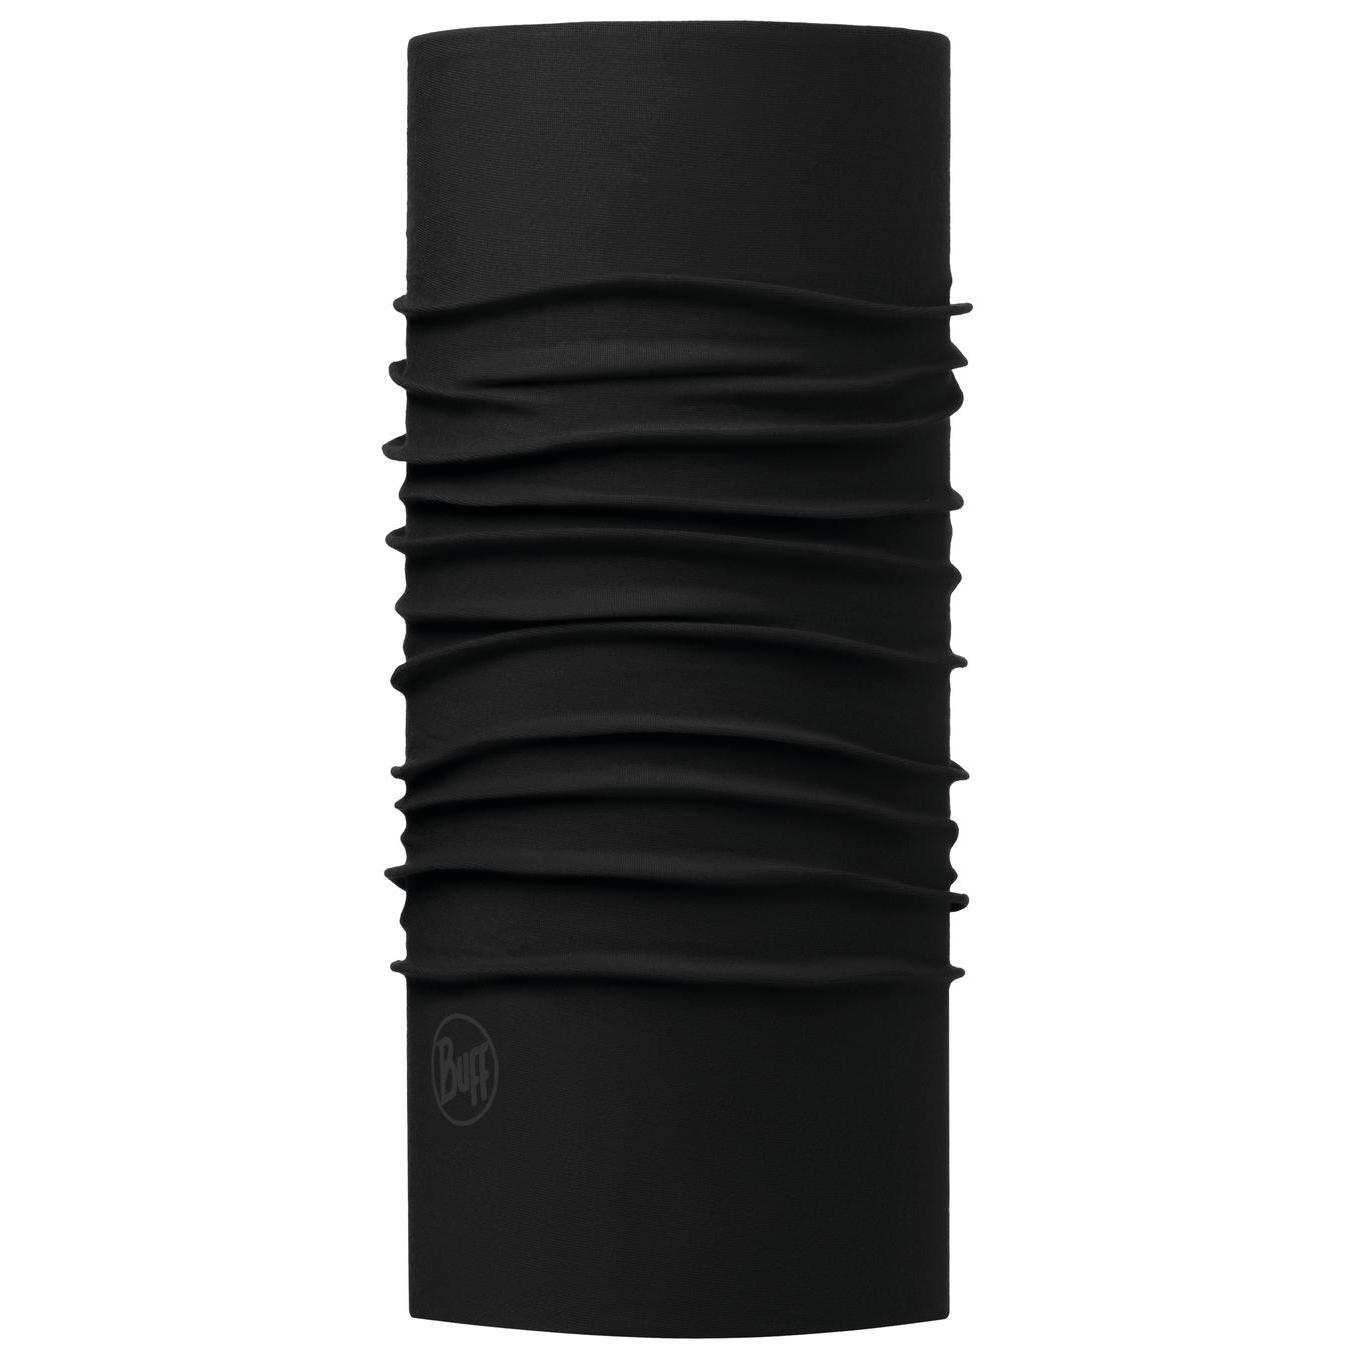 Бандана Buff Original Solid Black (117818.999.10.00)